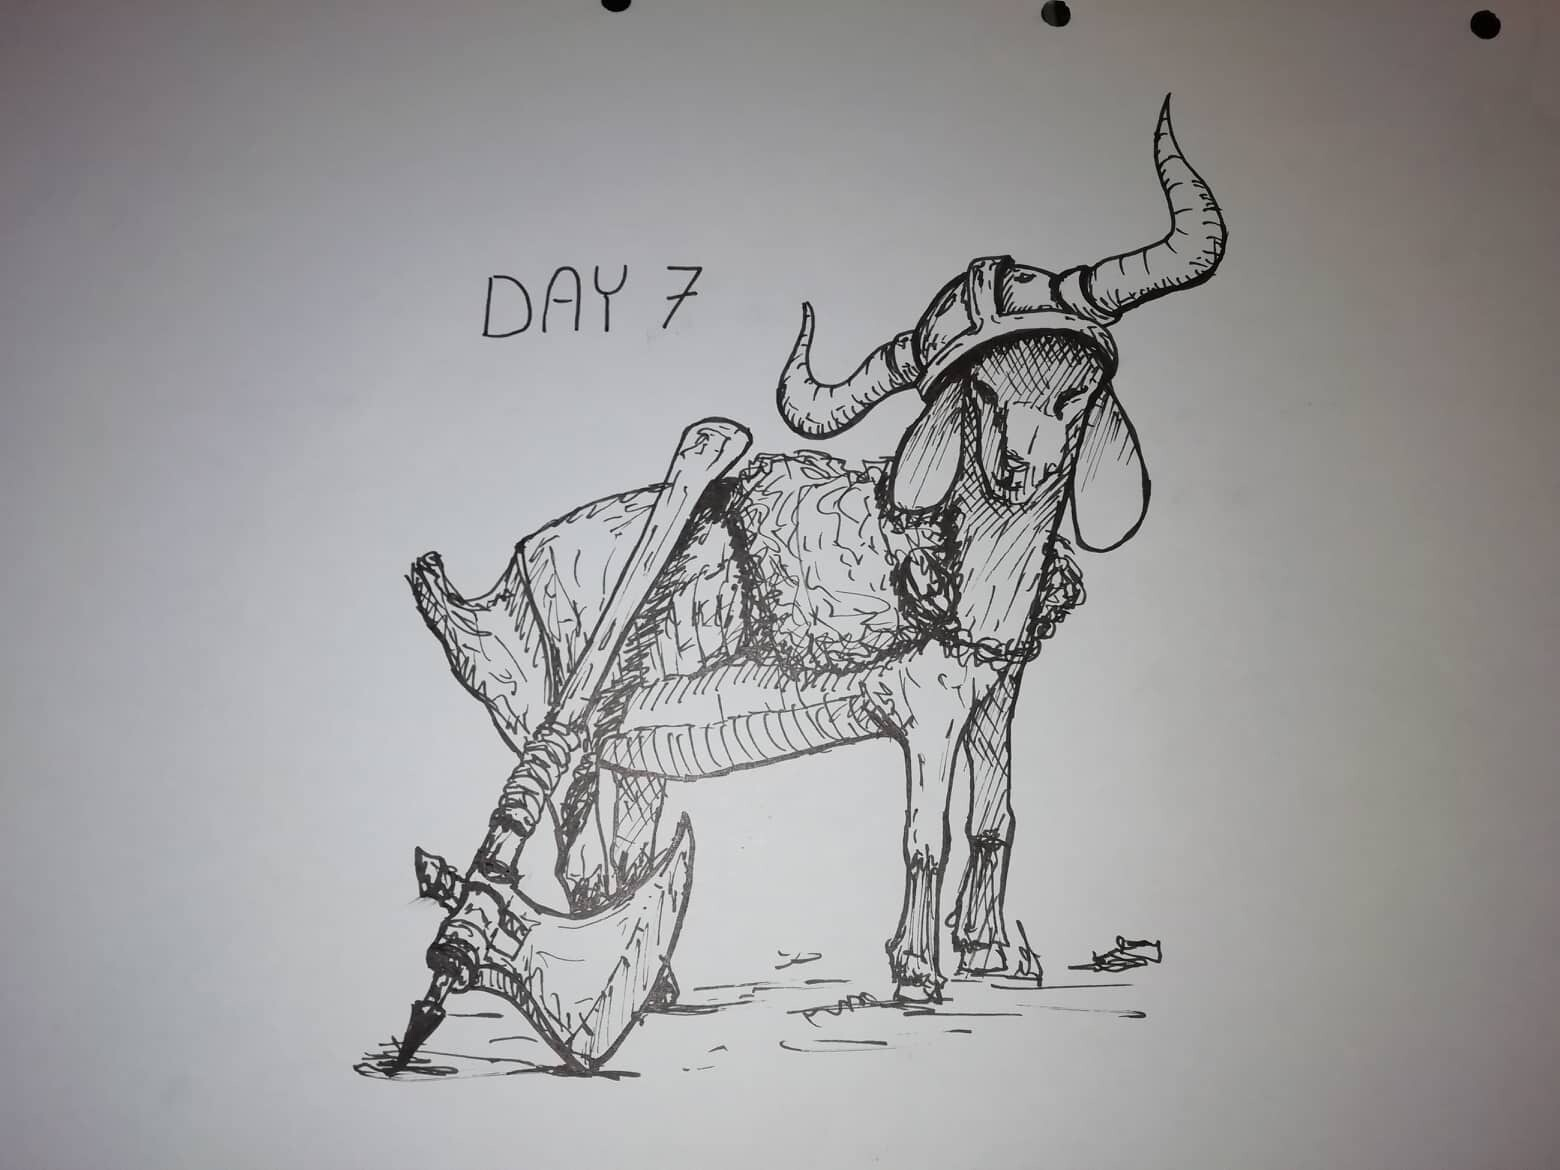 Day 7 - Enchanted